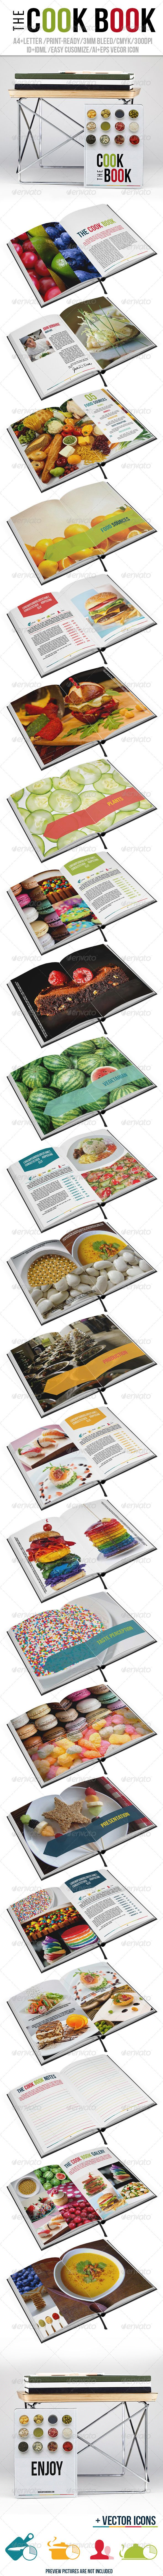 171 best cook book layouts images on pinterest book layouts